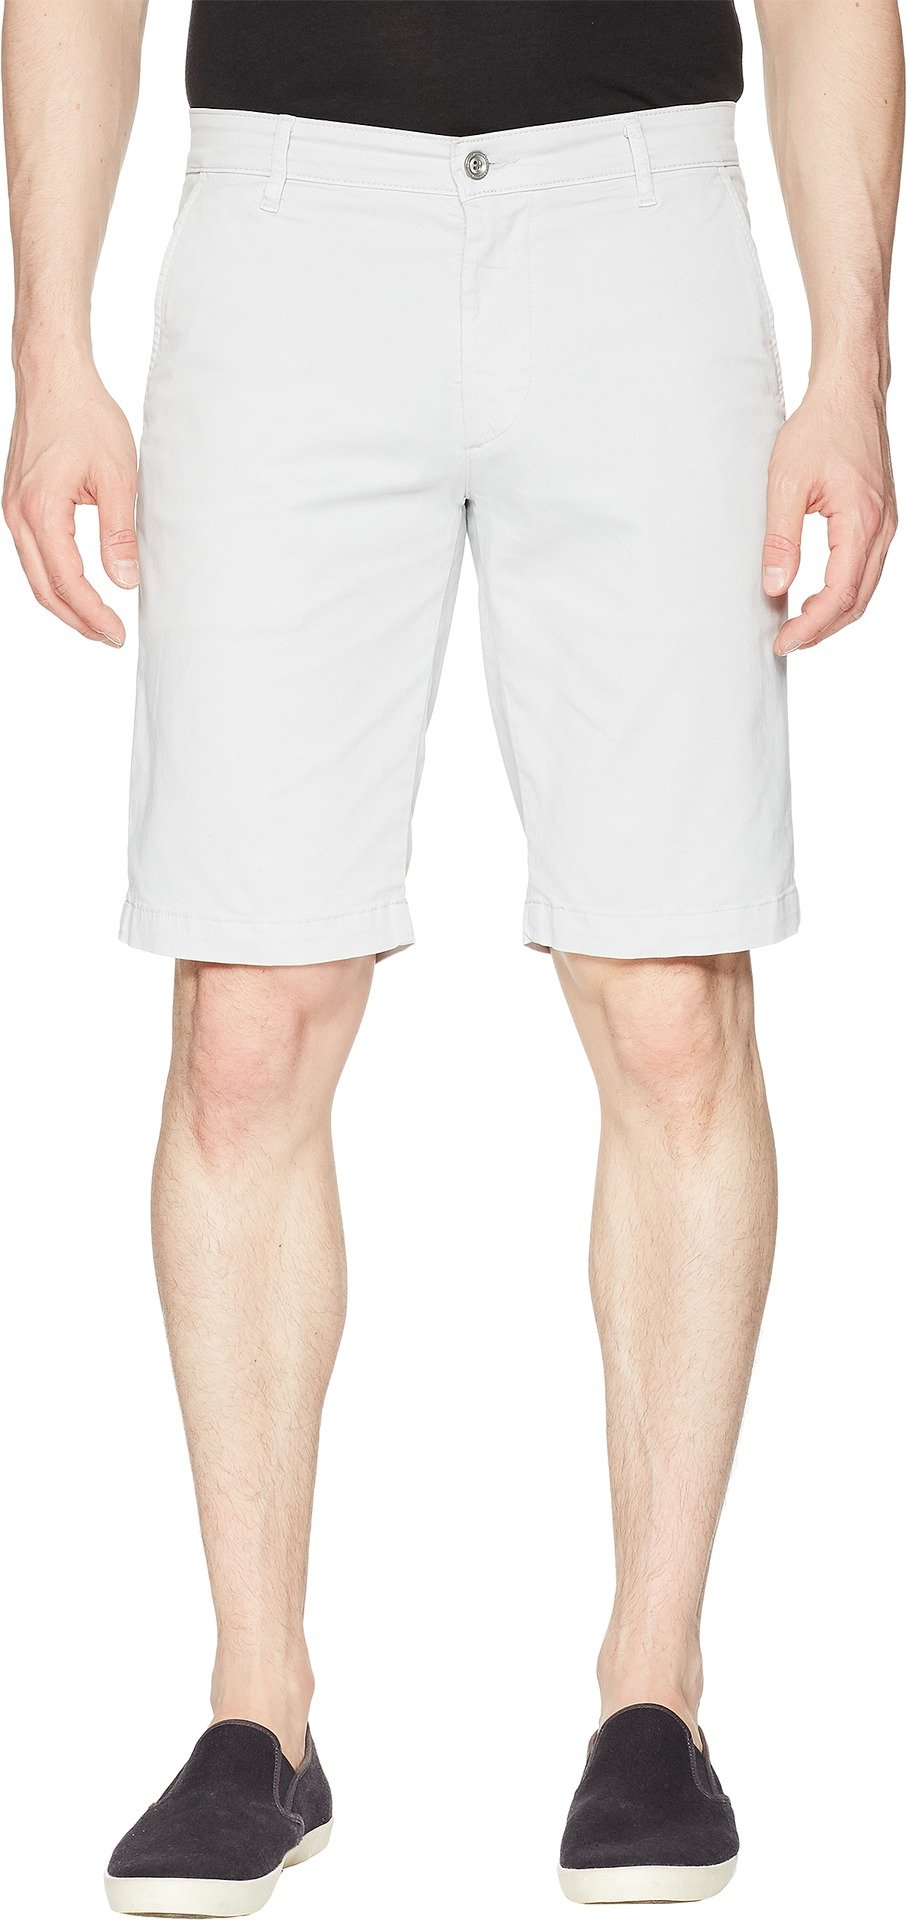 AG Adriano Goldschmied Men's Griffin Shorts in Pale Cinder Pale Cinder 36 11